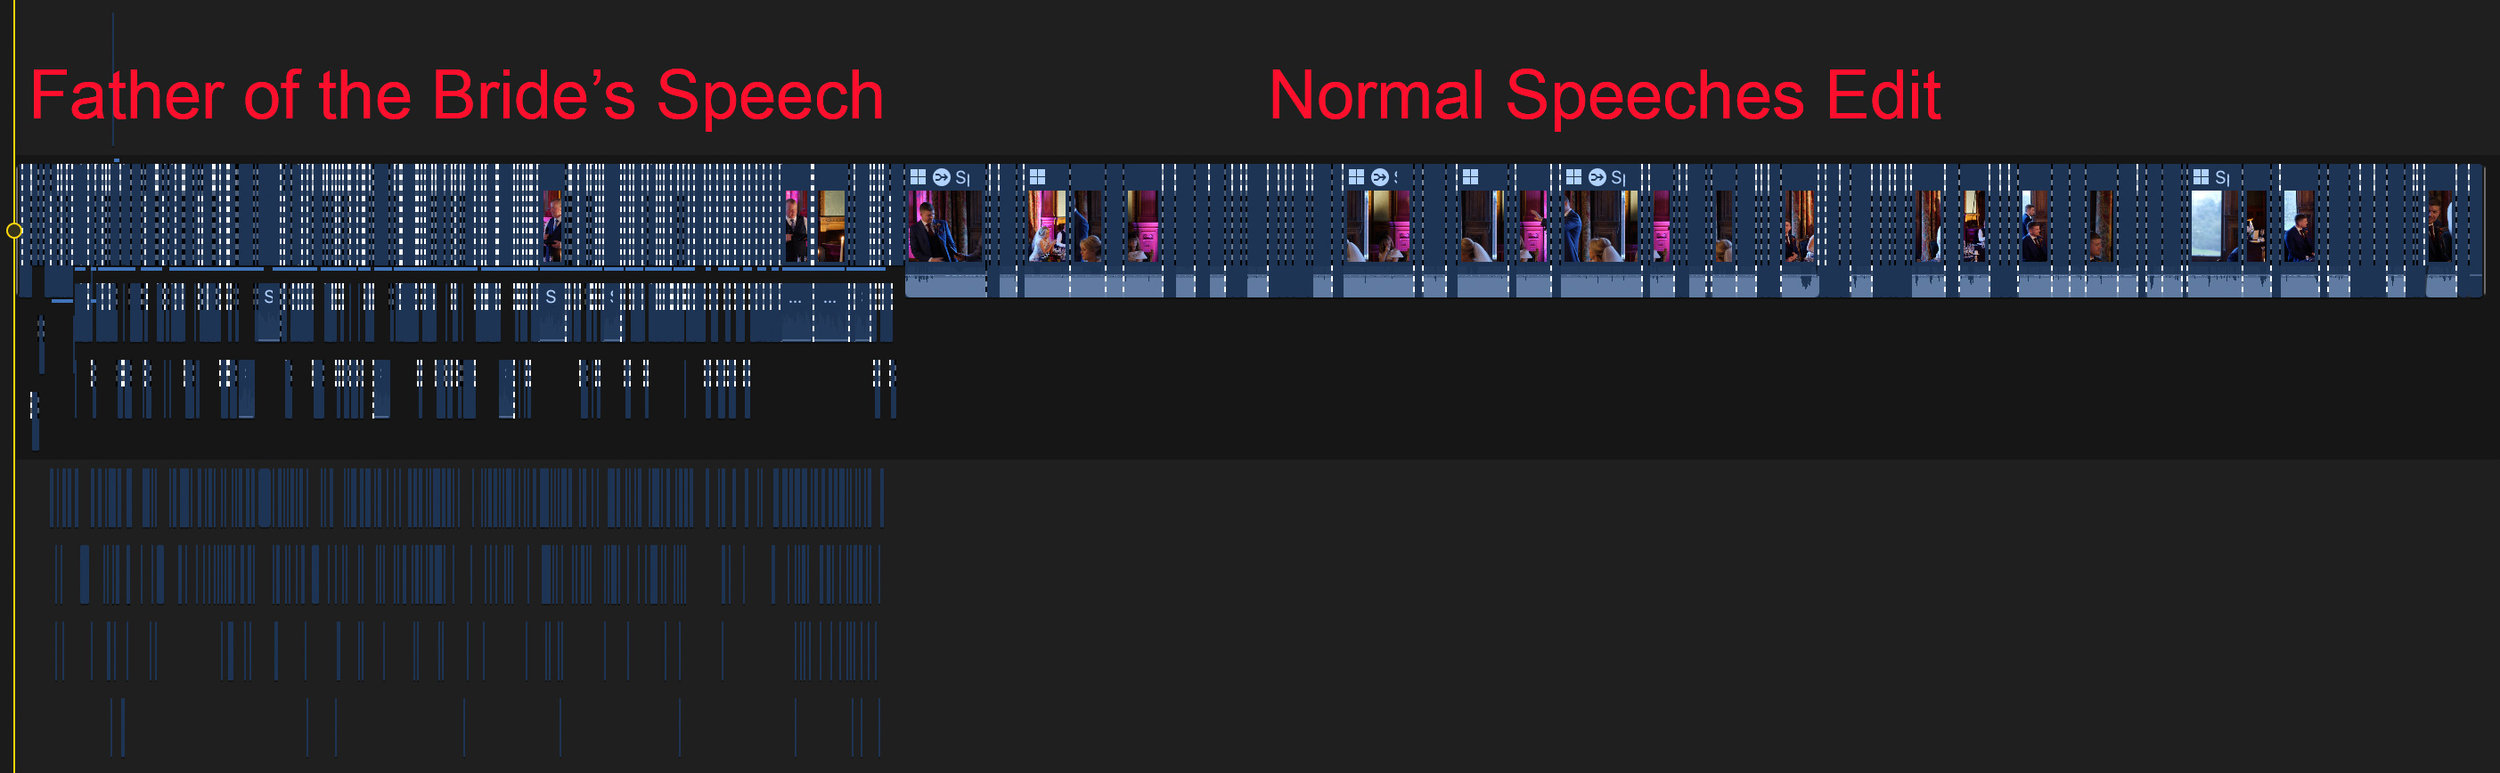 A timeline in Apple's Video Editing Software, Final Cut Pro X, showing the fix made to the Father of the Bride's Speech, after the Father of the Bride removed his coat jacket, which contained his audio recorders.